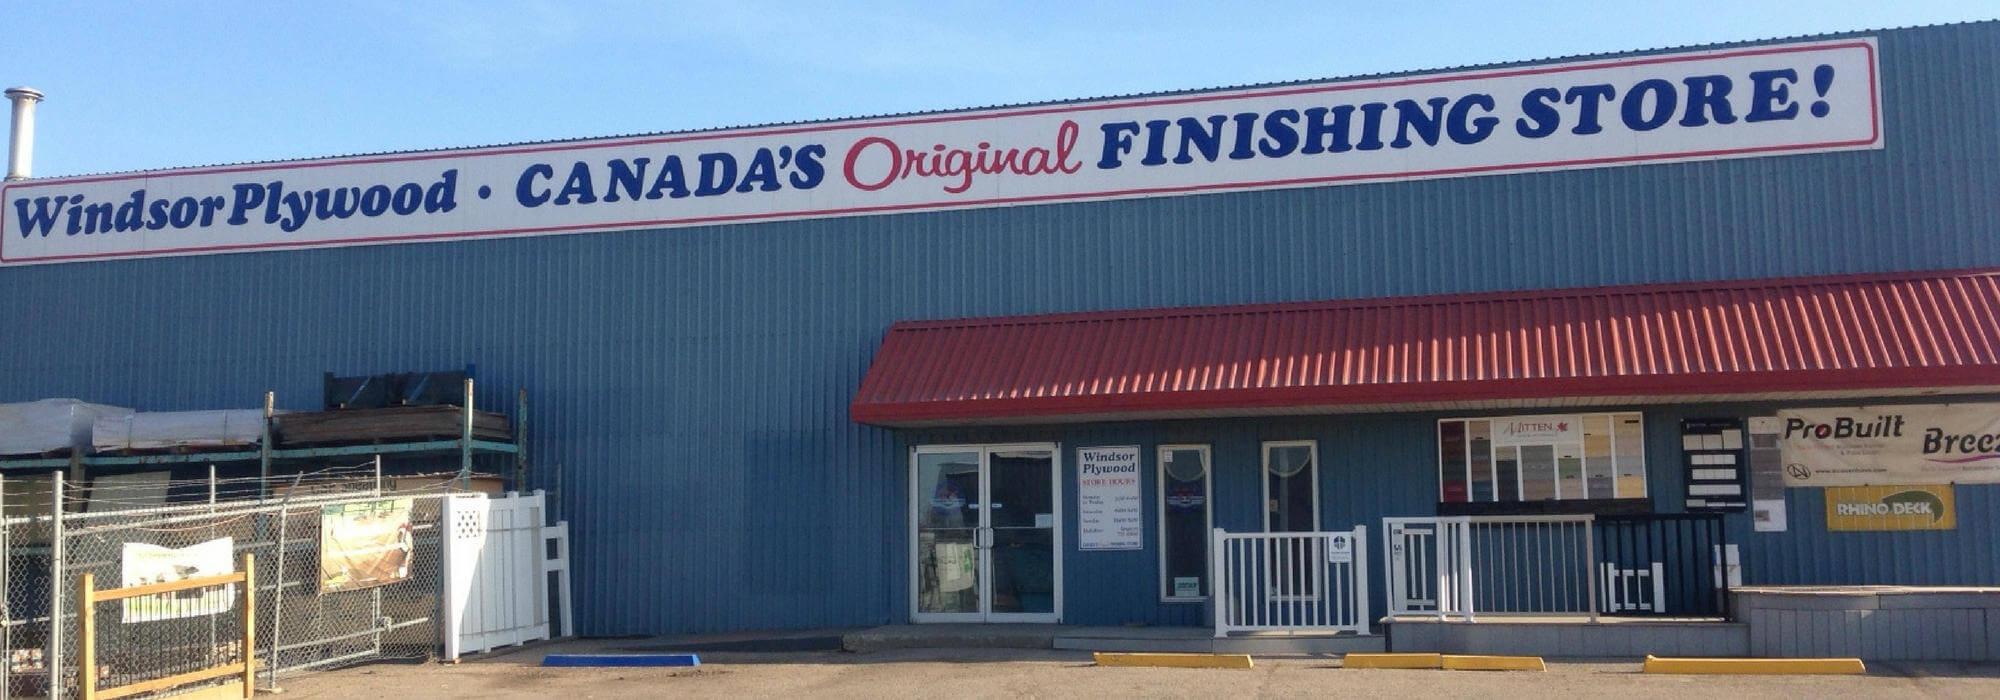 Windsor Plywood Regina store exterior